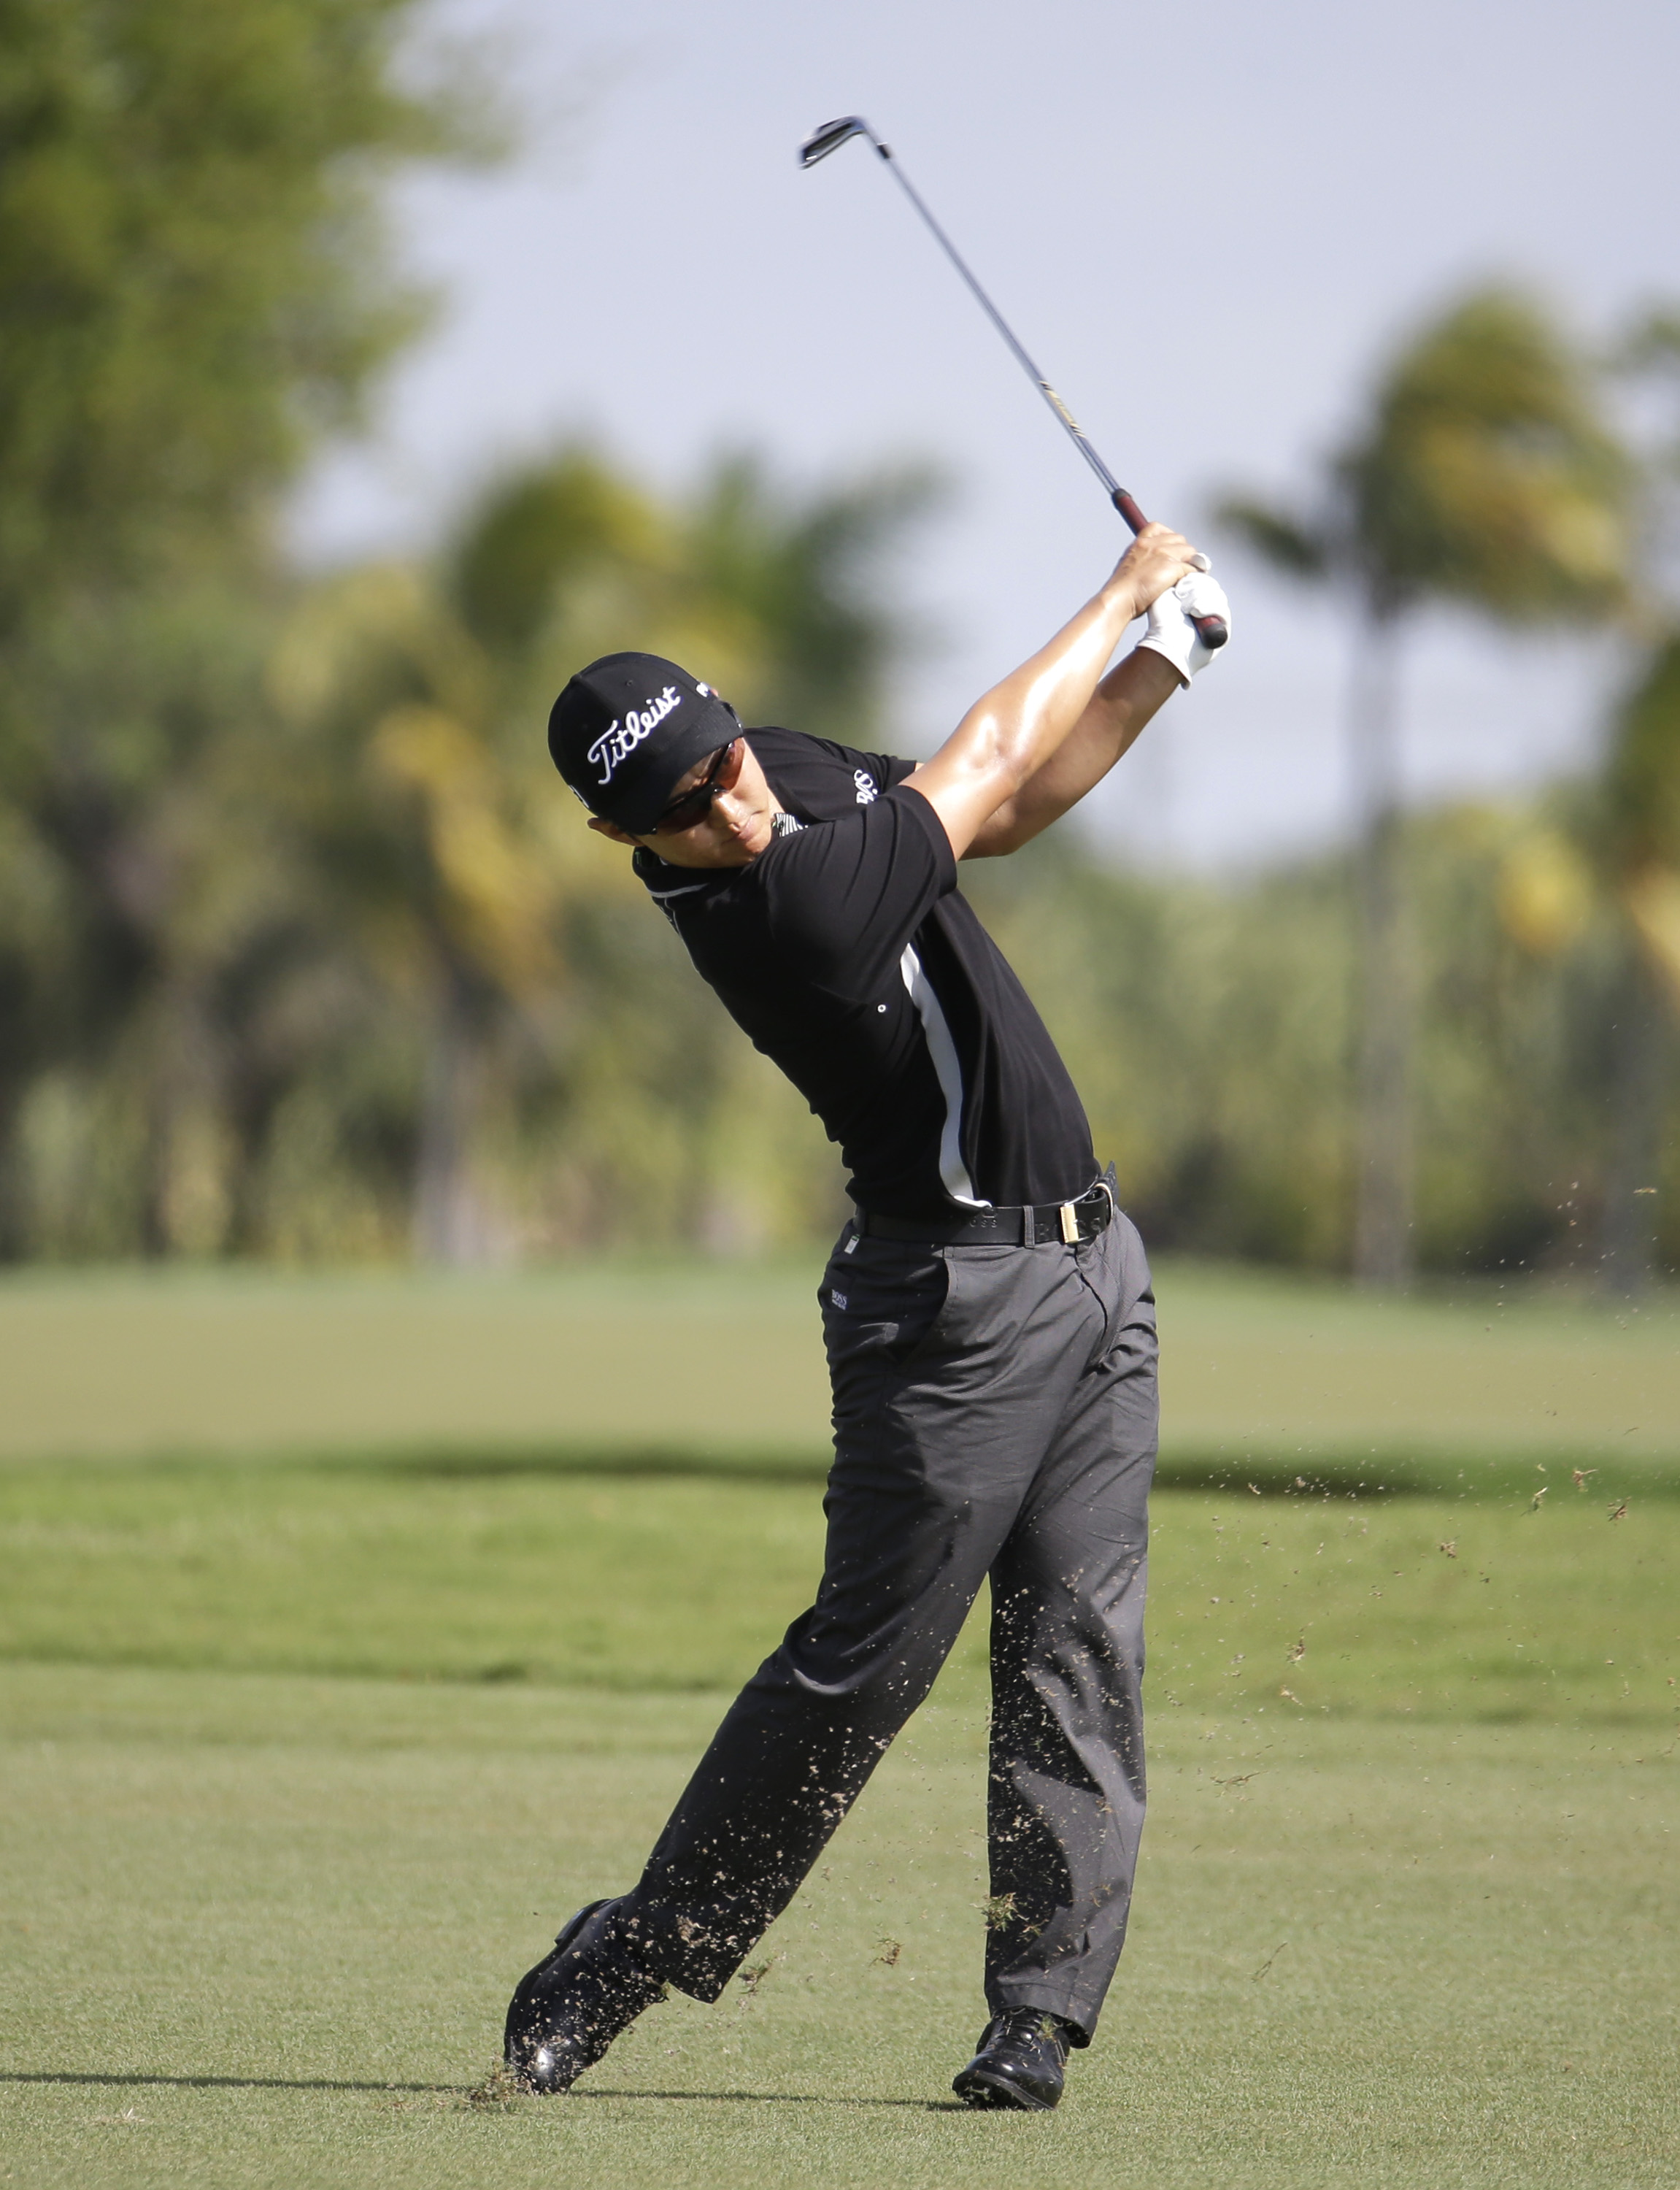 Jin Jeong of South Korea hits from the eighth fairway during a continuation of the first round of the Cadillac Championship golf tournament, Friday, March 7, 2014, in Doral, Fla. Play was suspended before the end of play Thursday due to severe weather